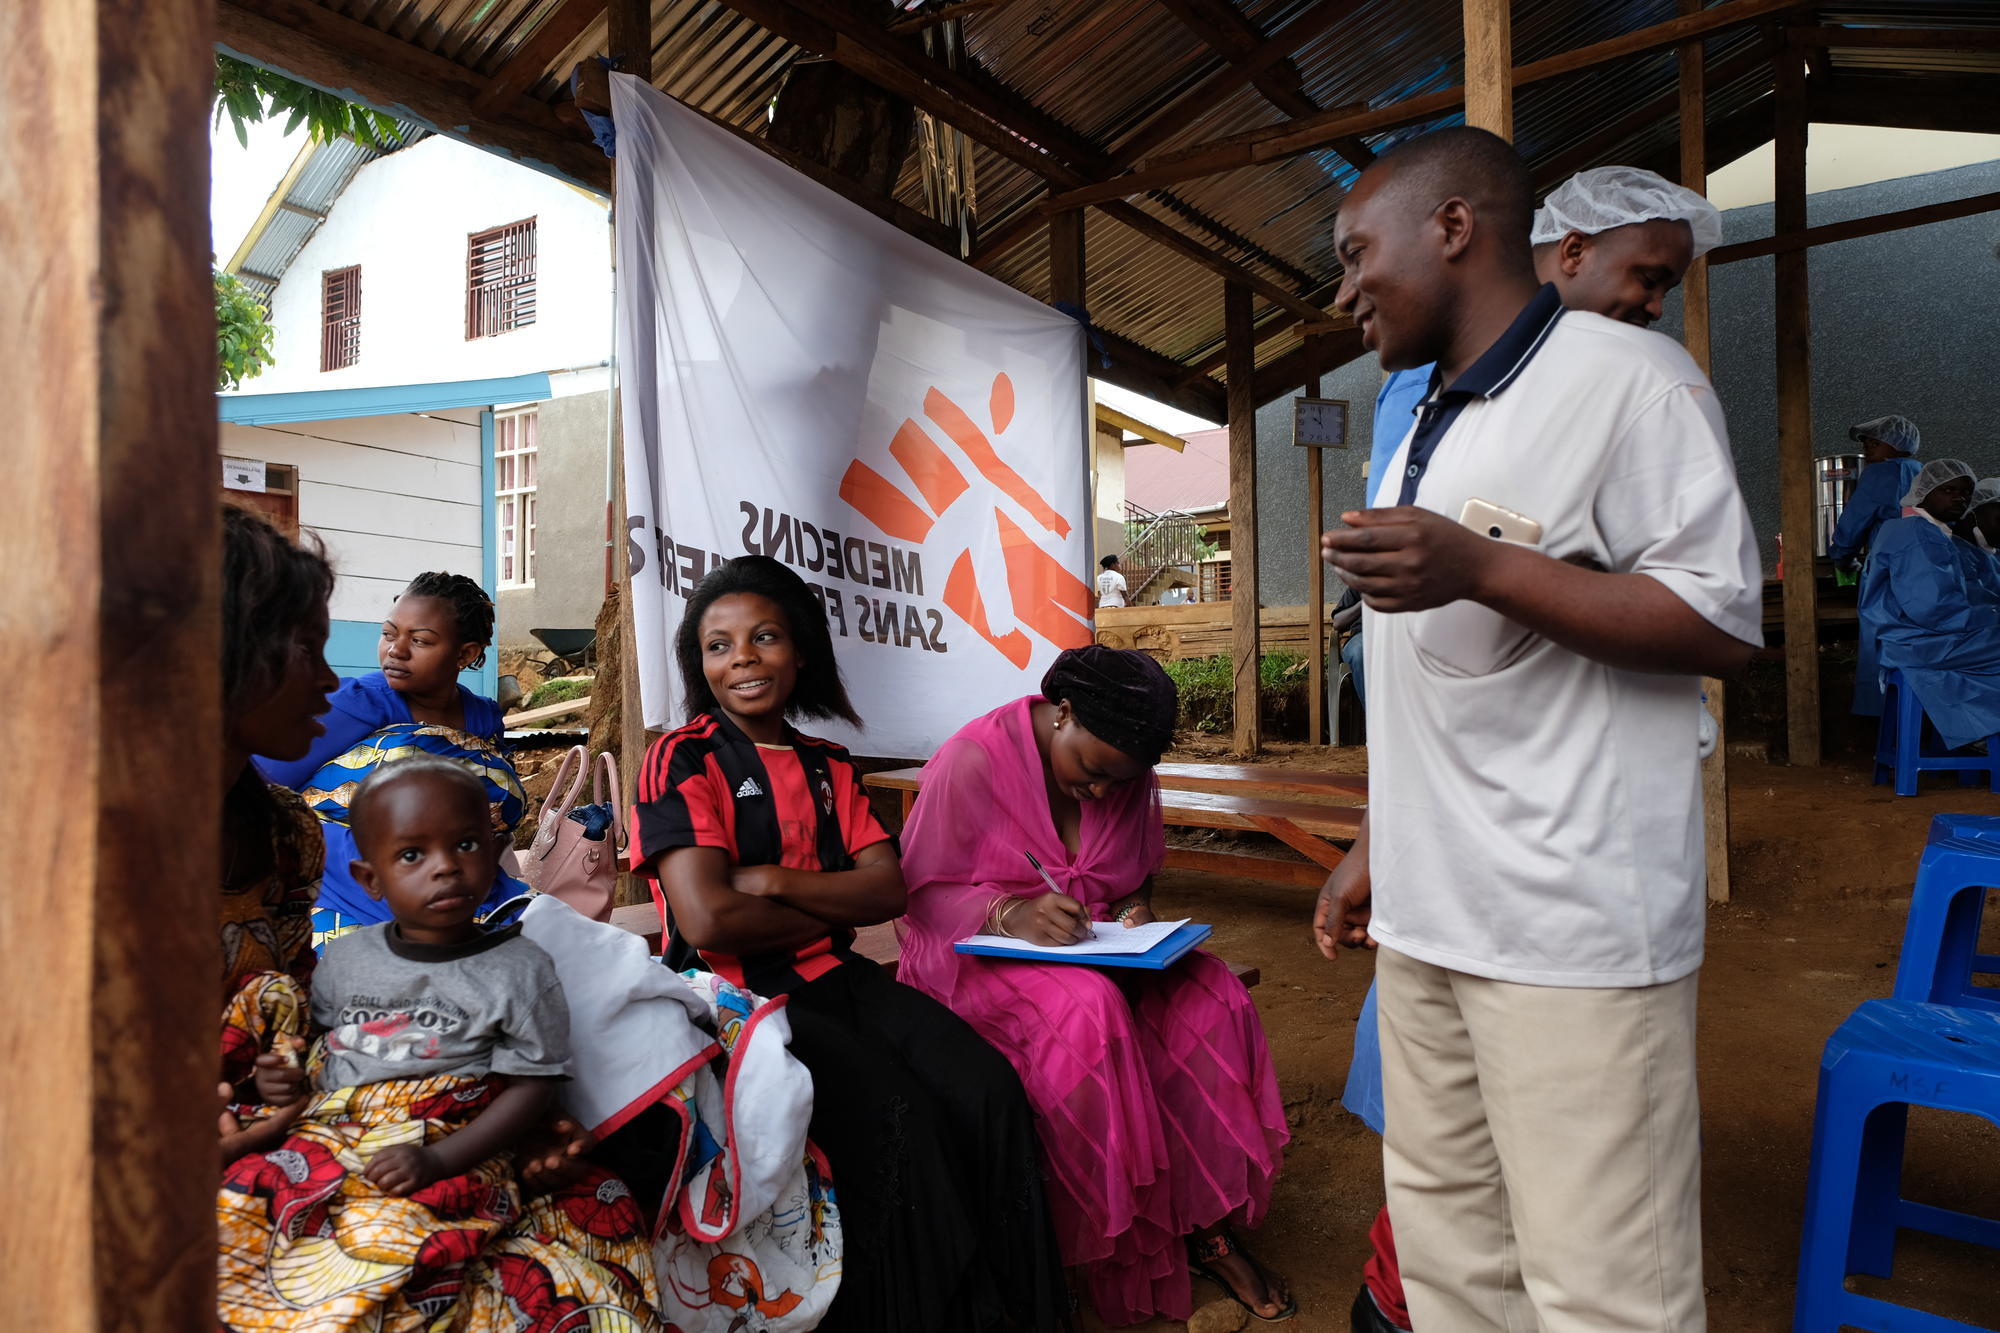 Beni ebola treatment center